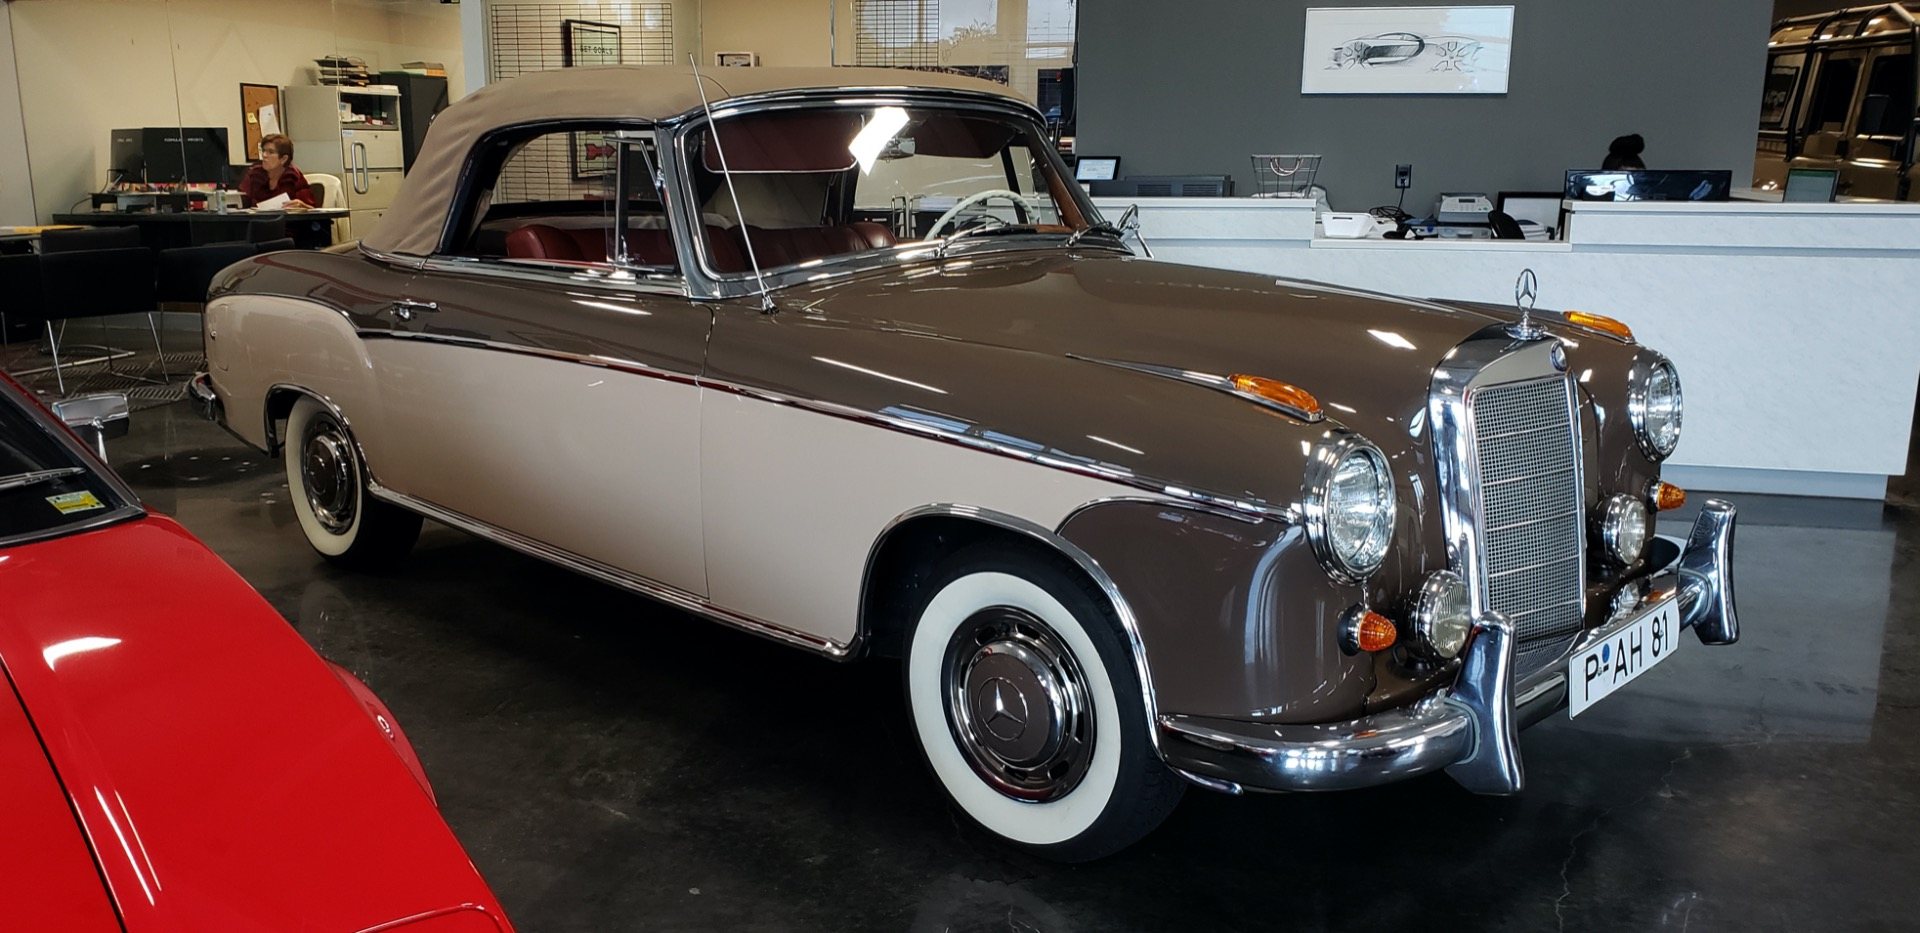 Used 1957 Mercedes-Benz 220 S Cabriolet - Full Restoration for sale Sold at Formula Imports in Charlotte NC 28227 4